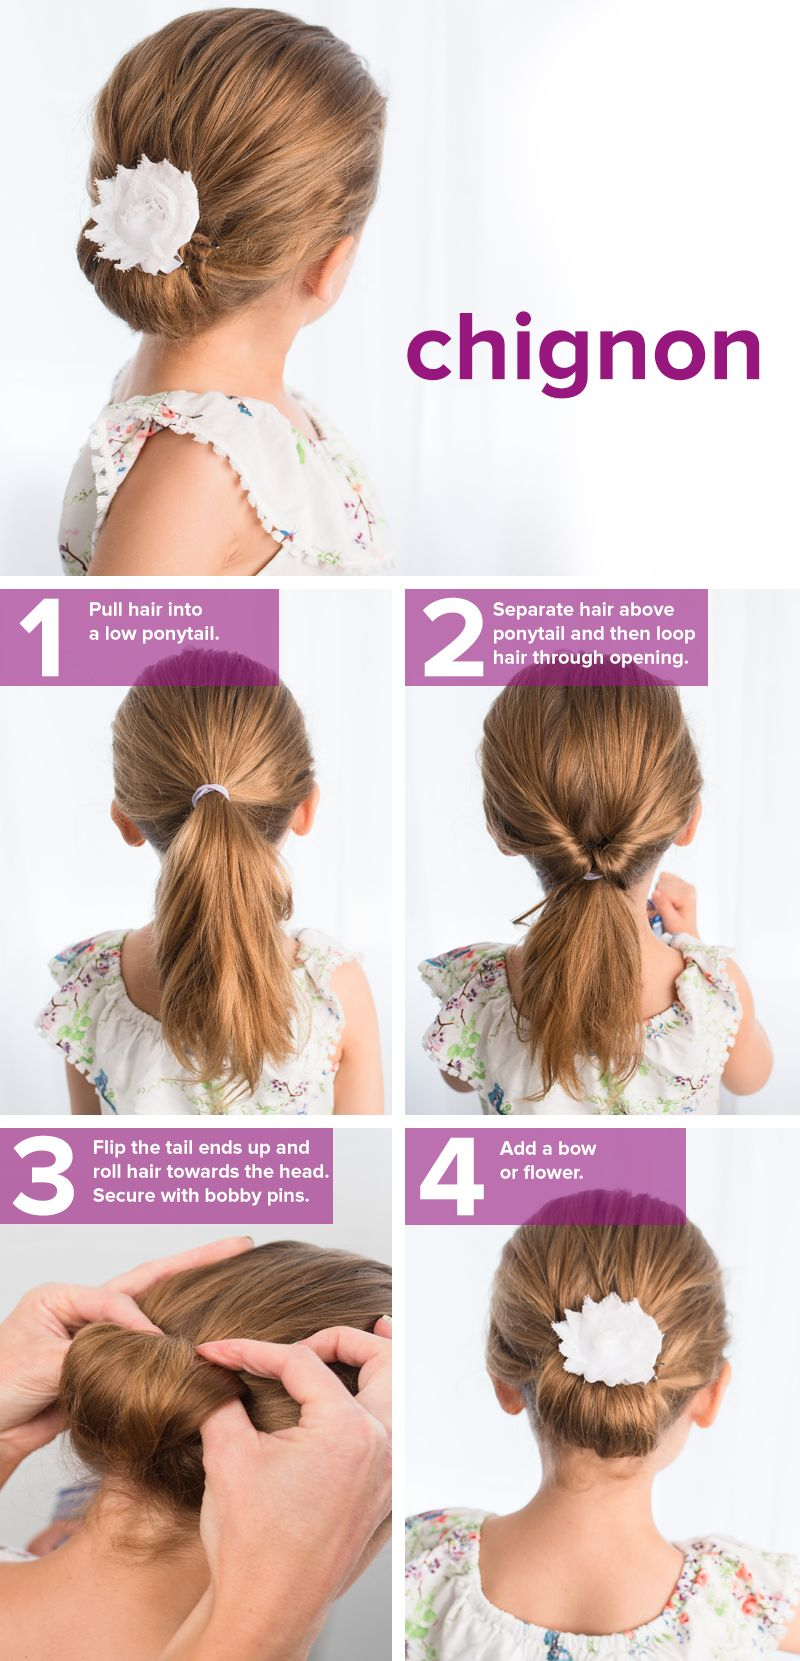 5 Fast Easy Cute Hairstyles For Girls In 2019 It S Fun